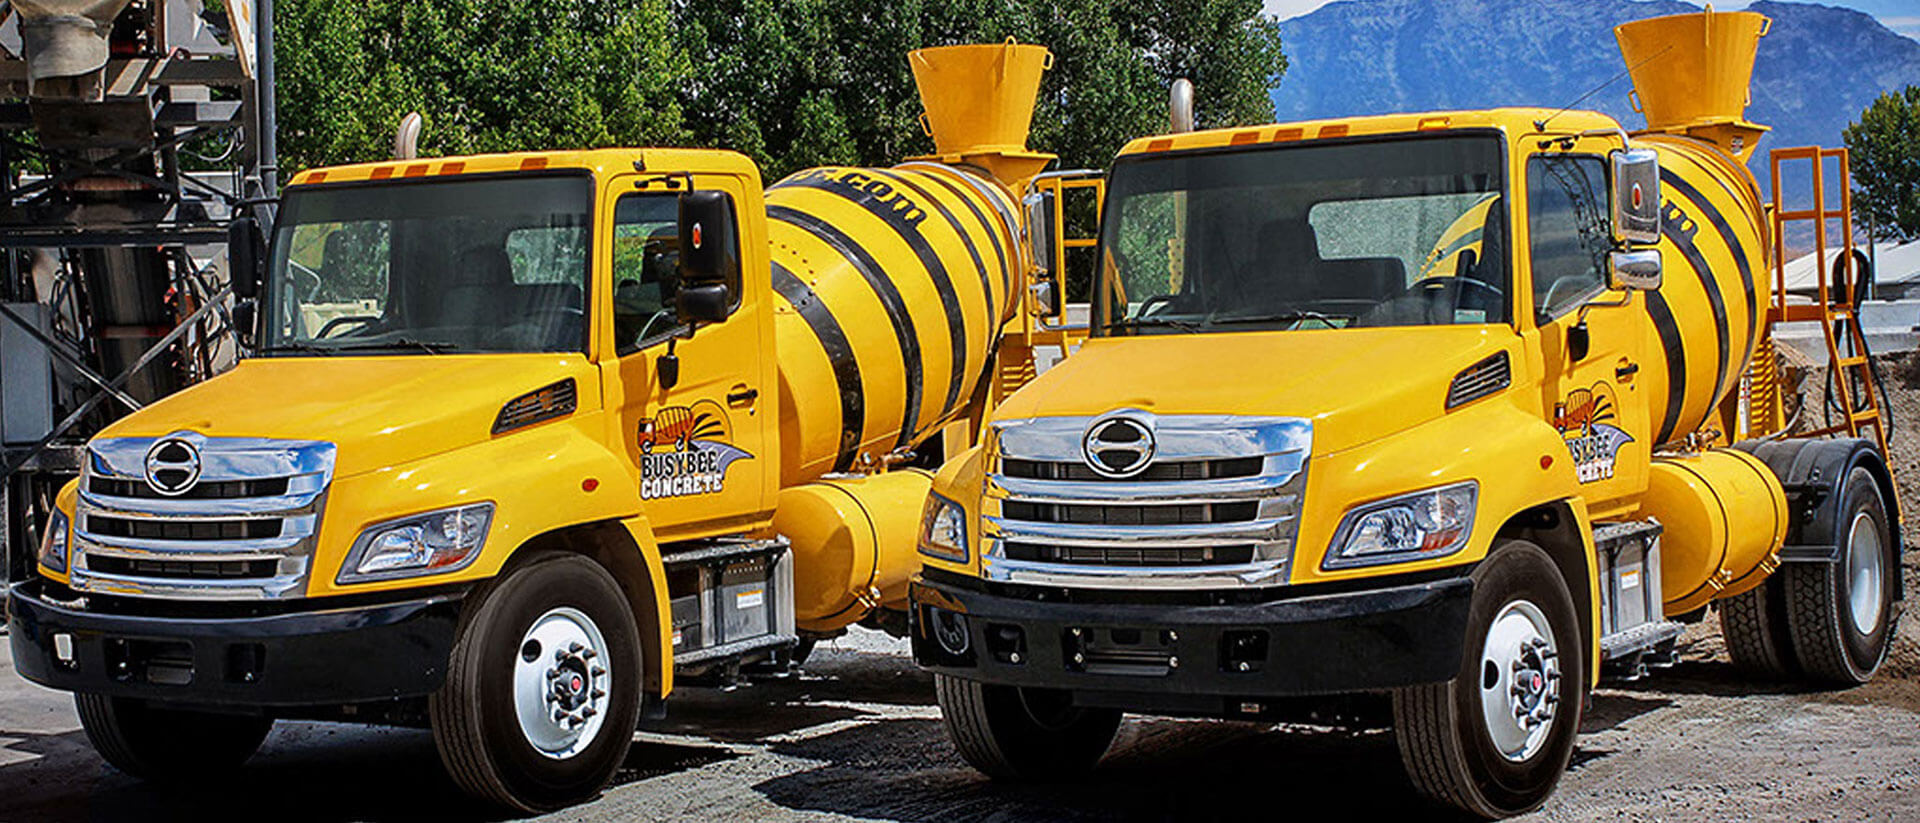 Busy Bee Concrete Delivery Pricing